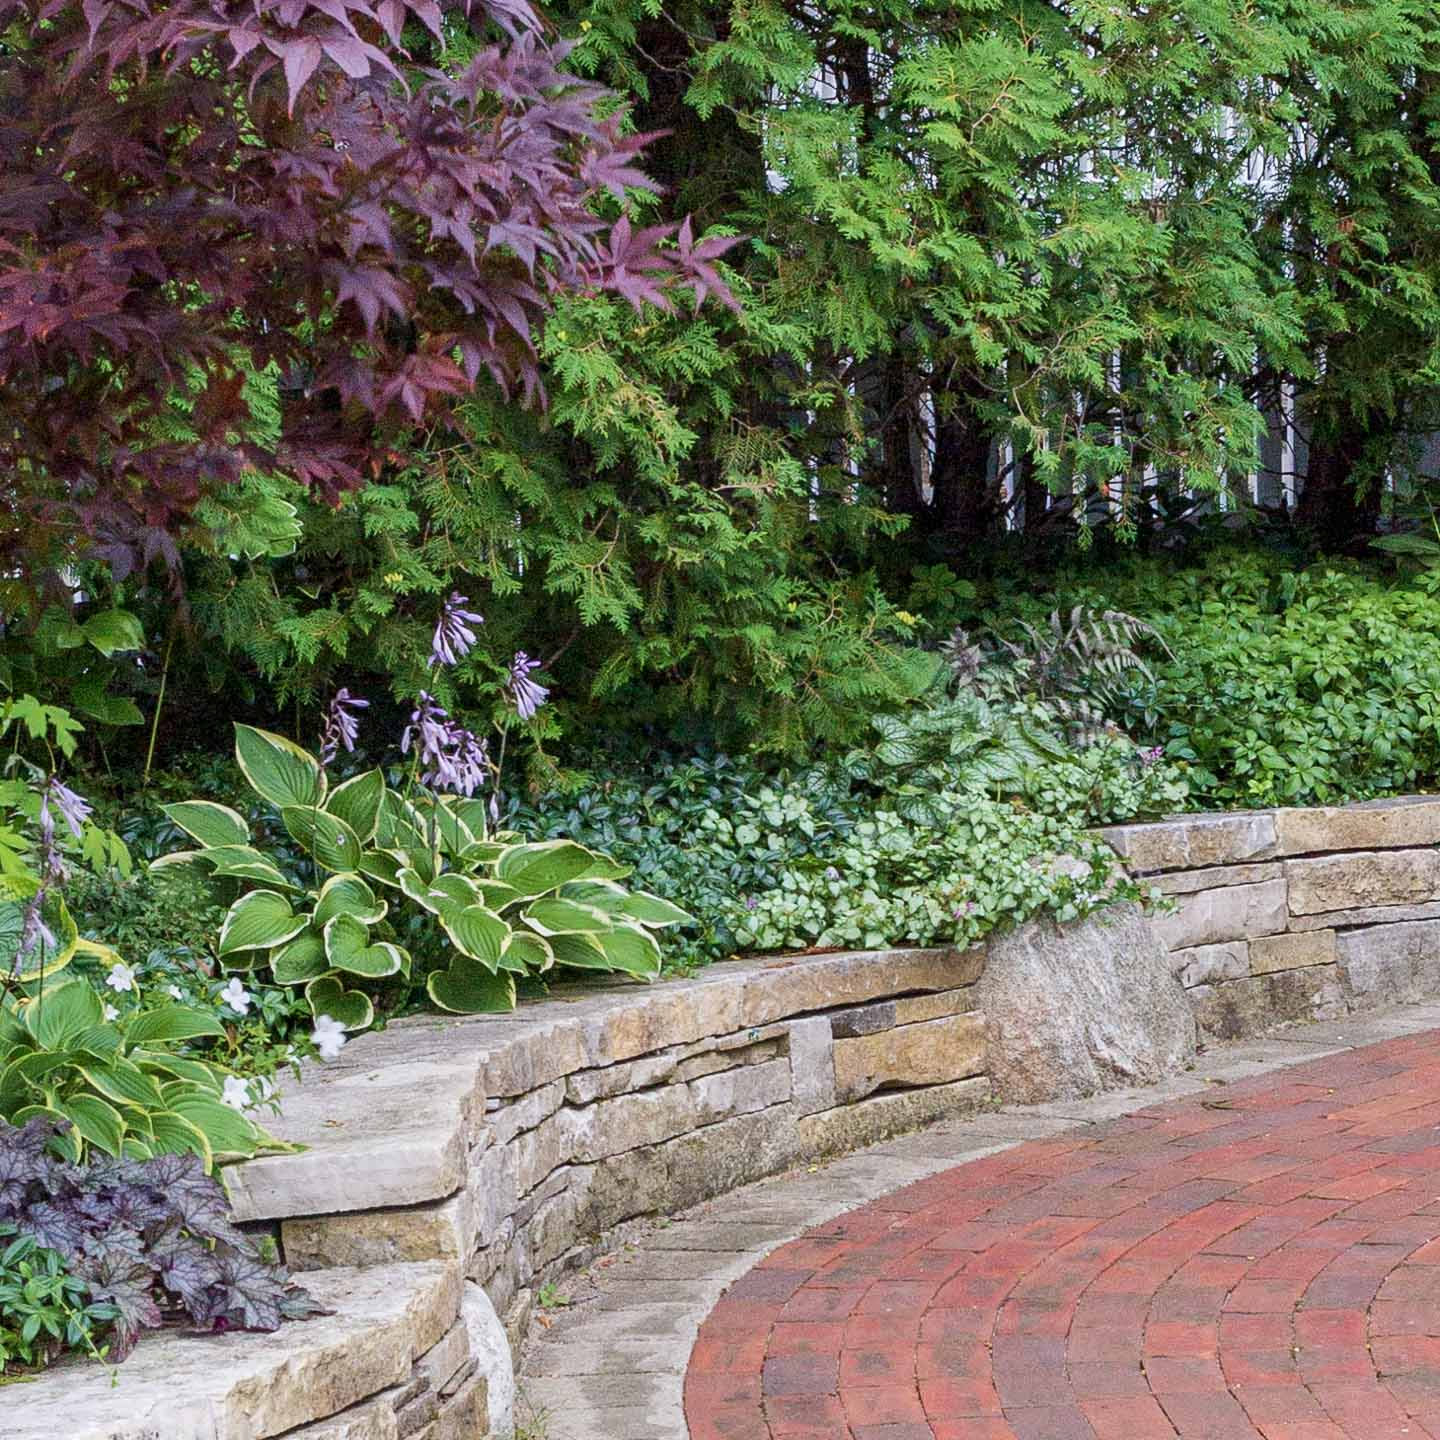 21 Stunning Perennial Ground Cover Plants That Thrive In The Shade